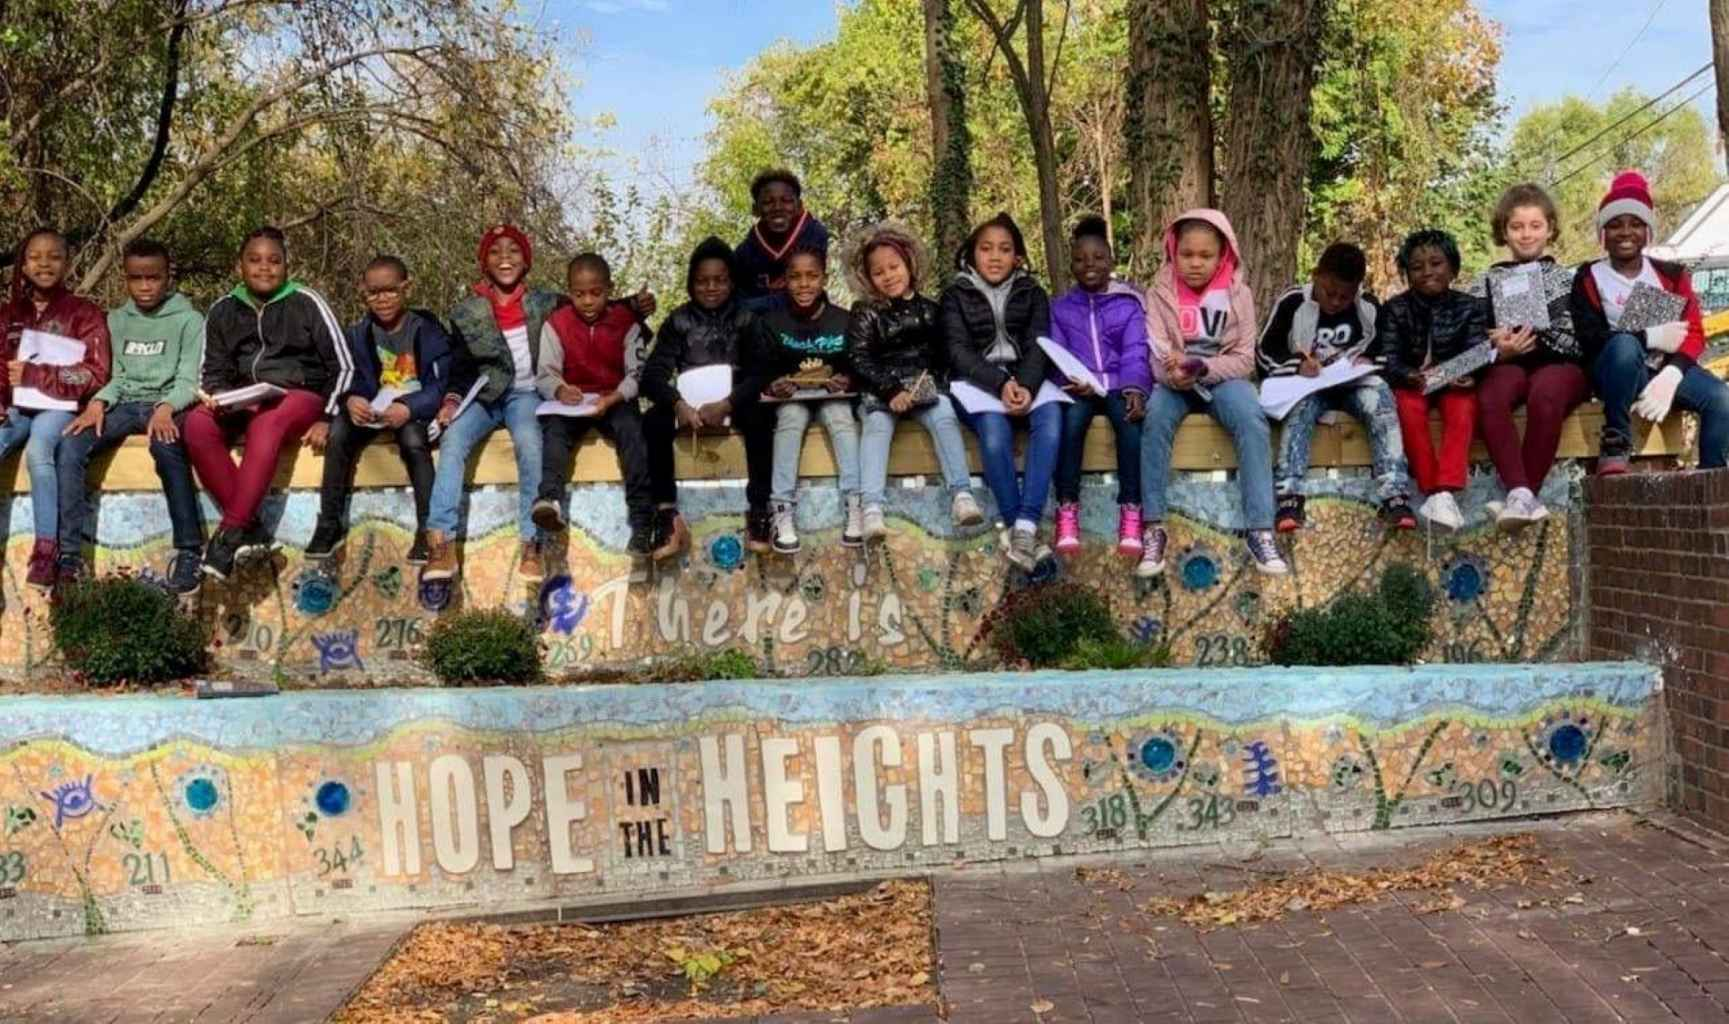 17 child participants in Hope in the Heights pogram witCreatve City